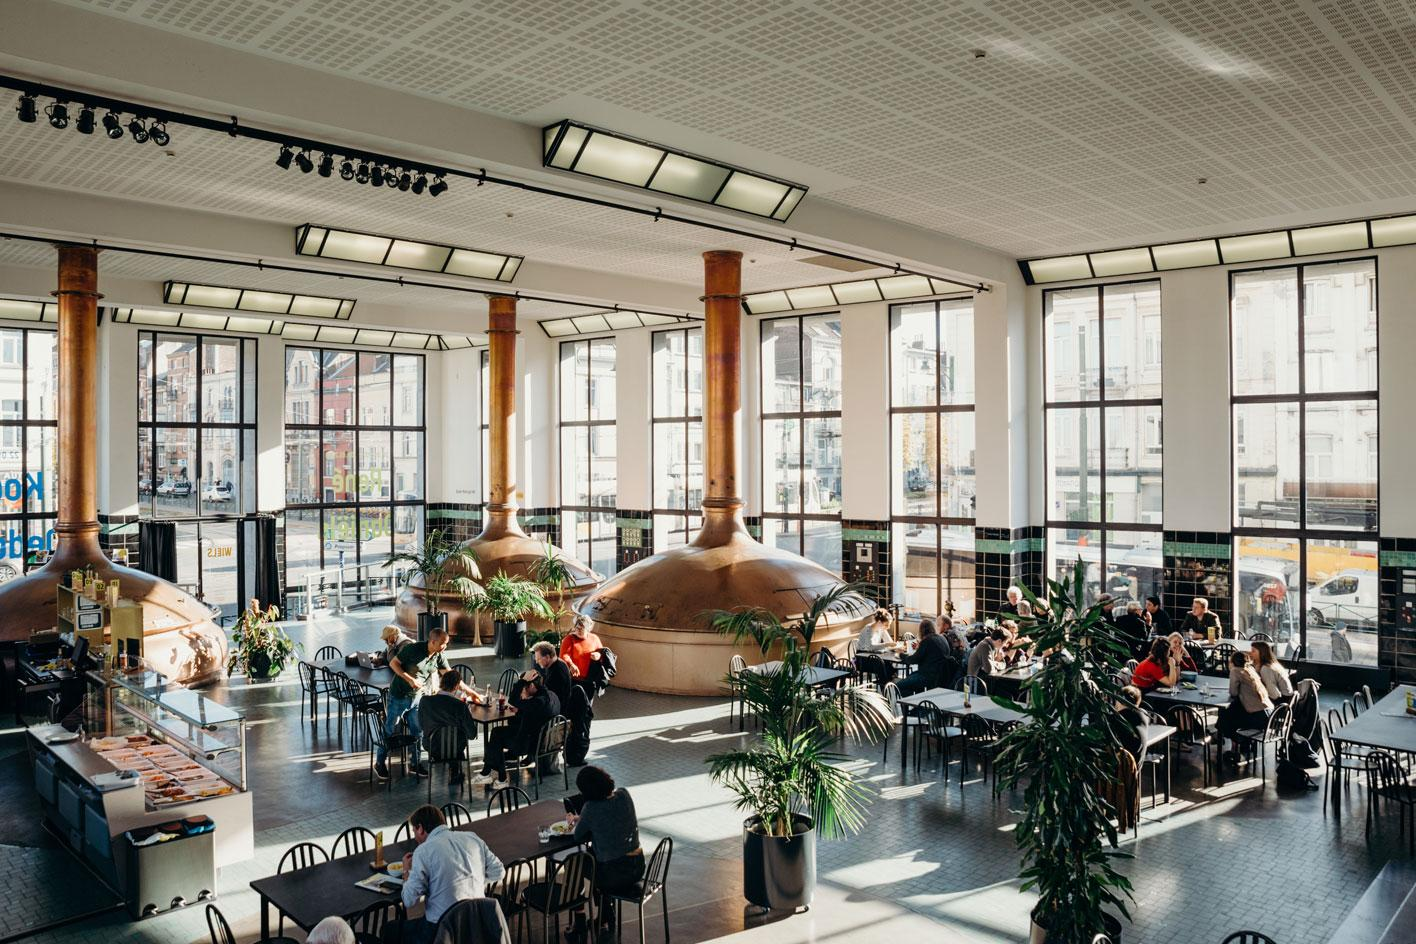 Inside the brewing hall turned caféof Wiels in 2018. Photography:Alexandra Bertels